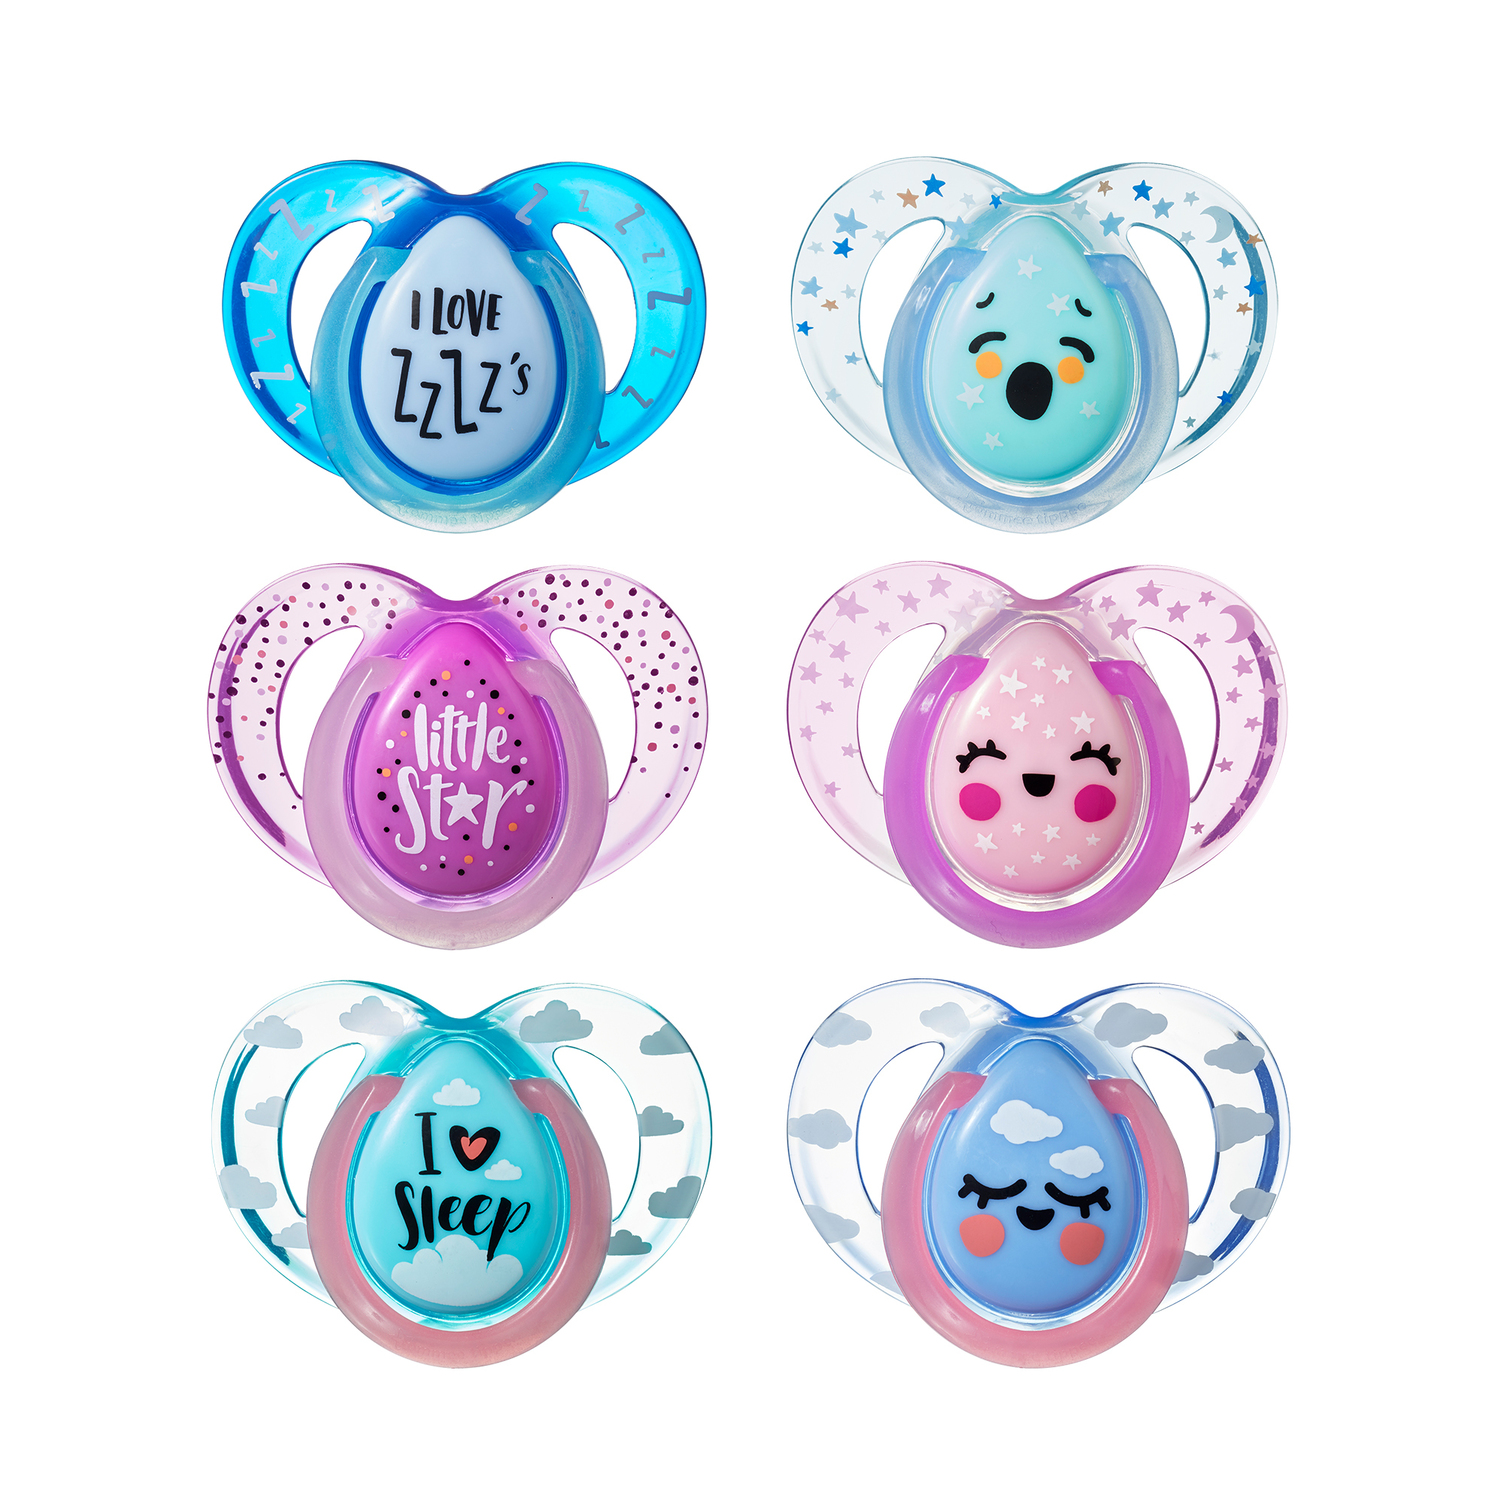 Tommee Tippee Night Time Pacifier, 6-18 mo., 2 pk. - Colors, Characters, Theme May Vary